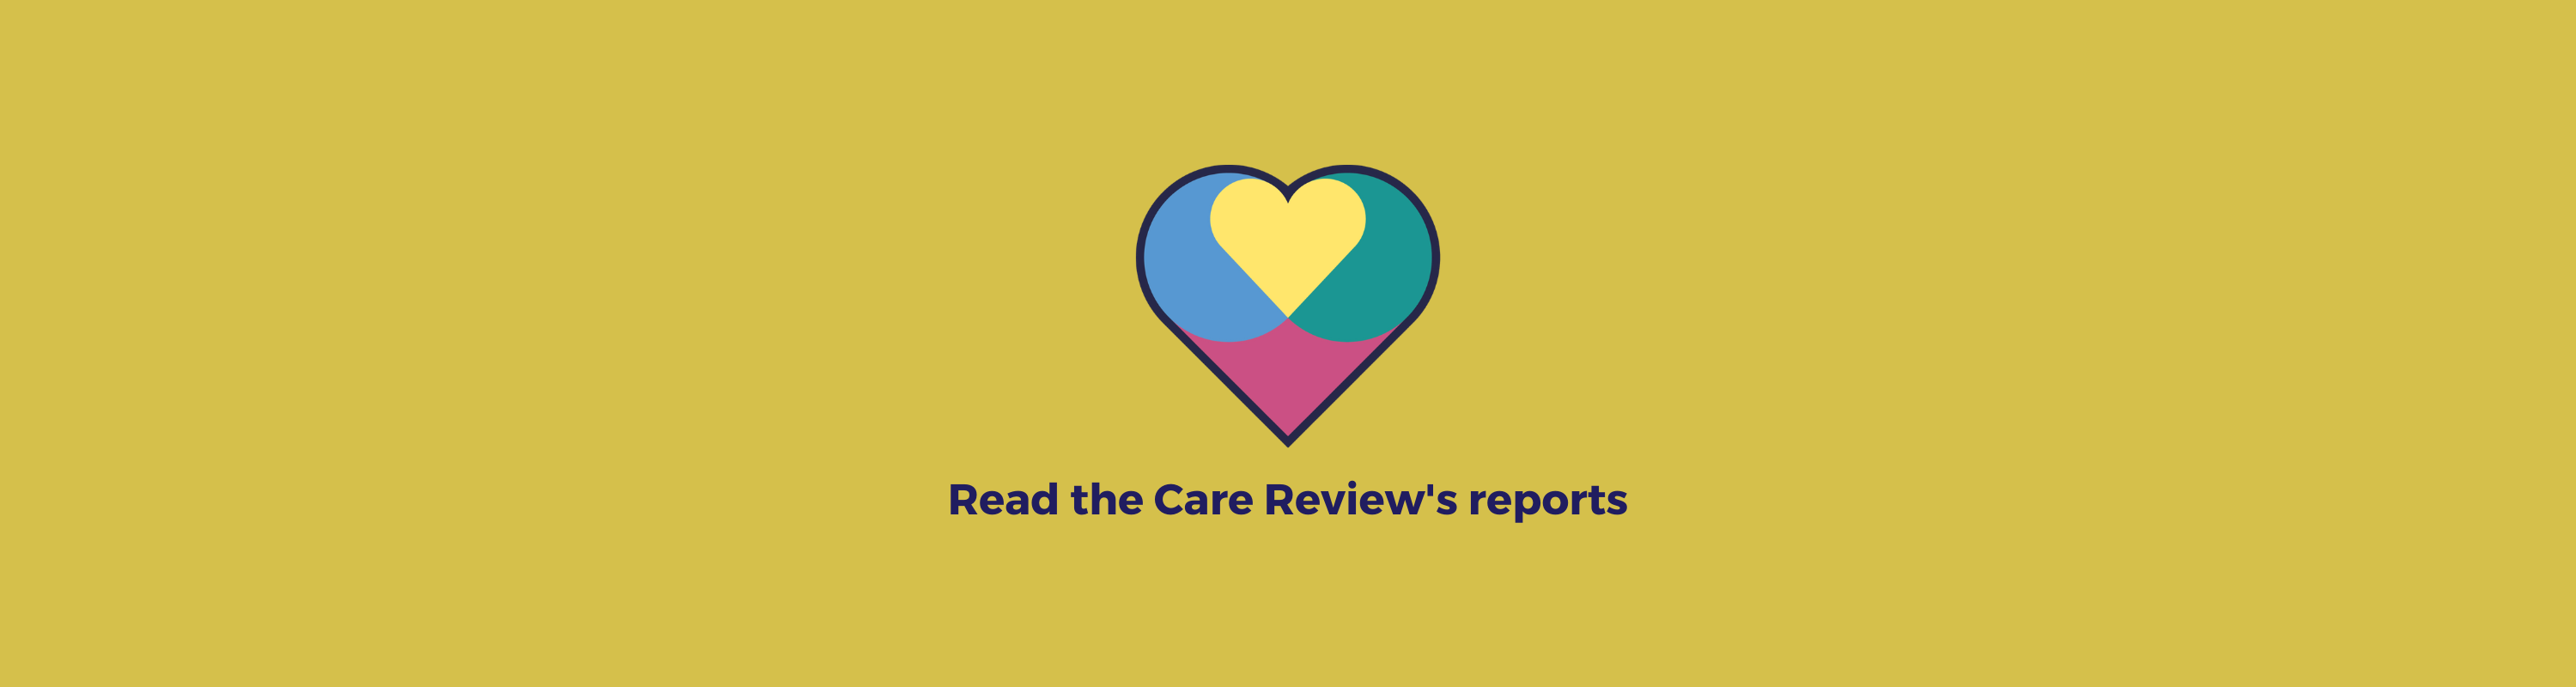 Read the care review reports